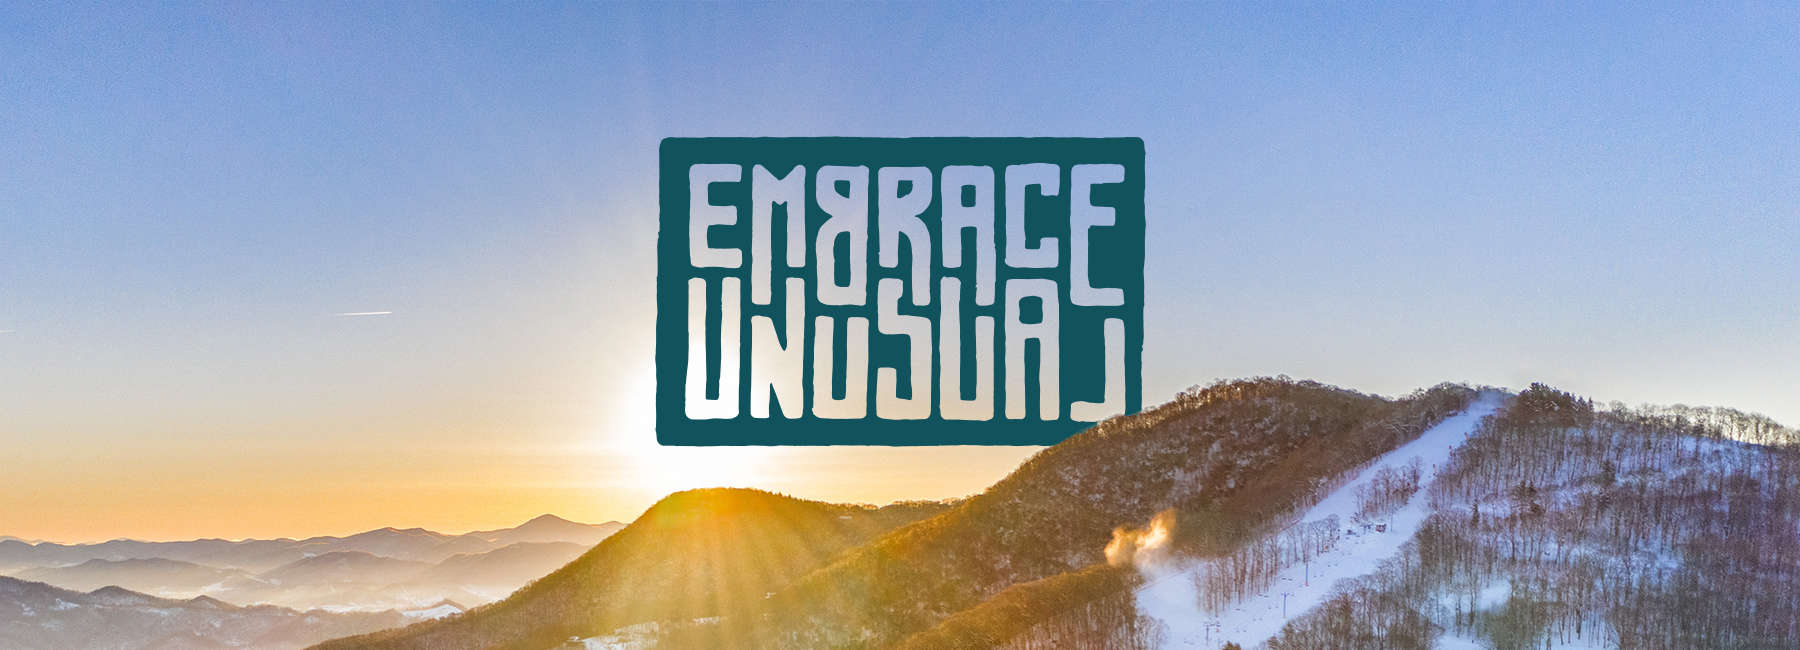 Embrace Unusual - Image of the Smoky Mountains in Winter